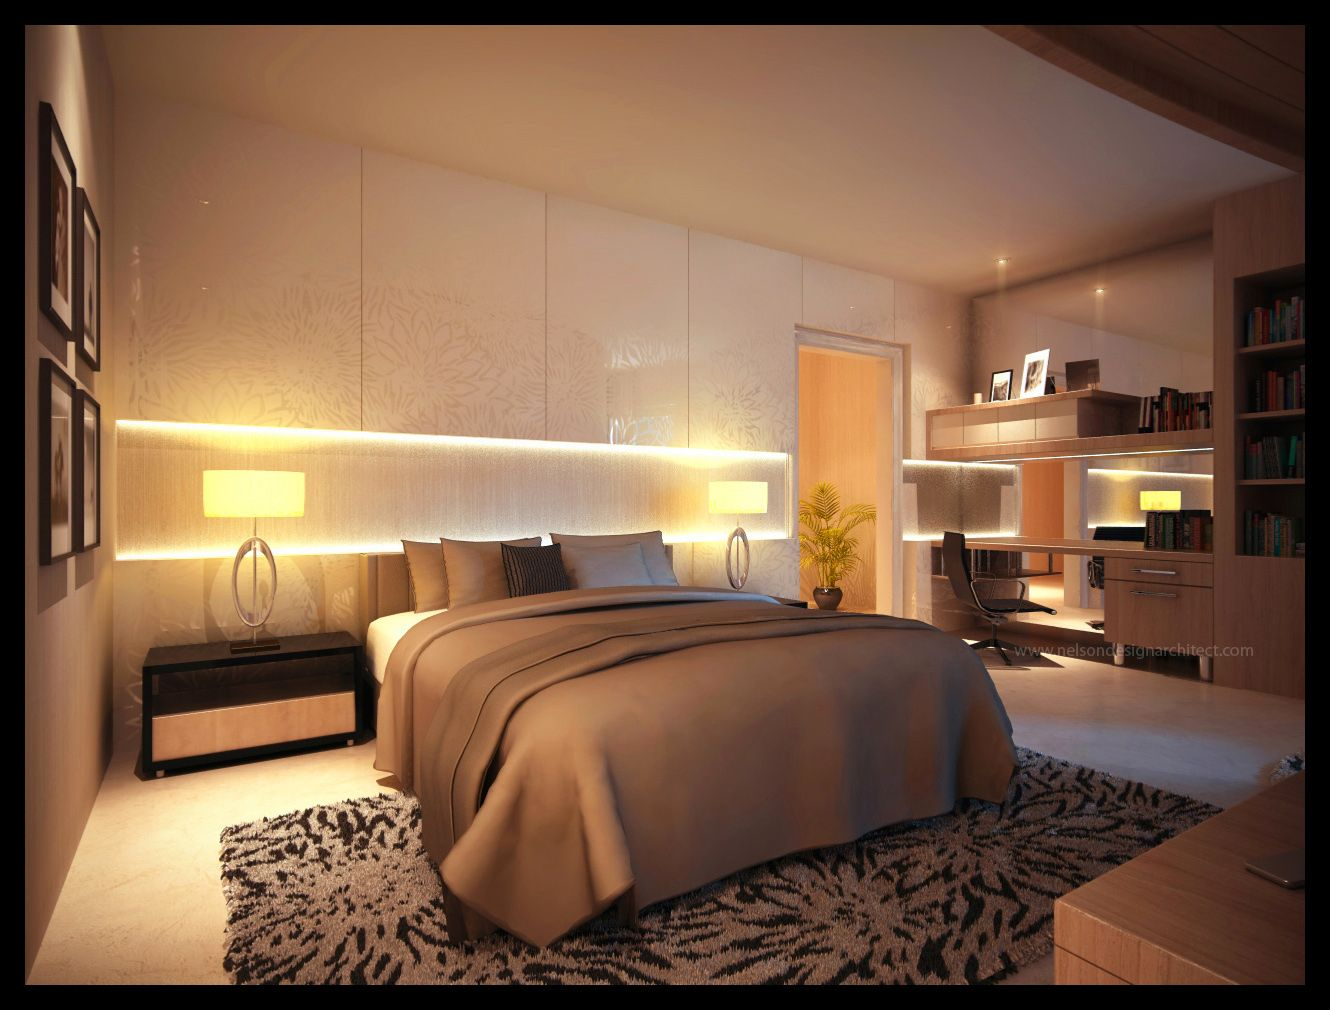 Luxury Bedroom Luxury Bedrooms And Classy Luxury Bedroom The Whole Luxury